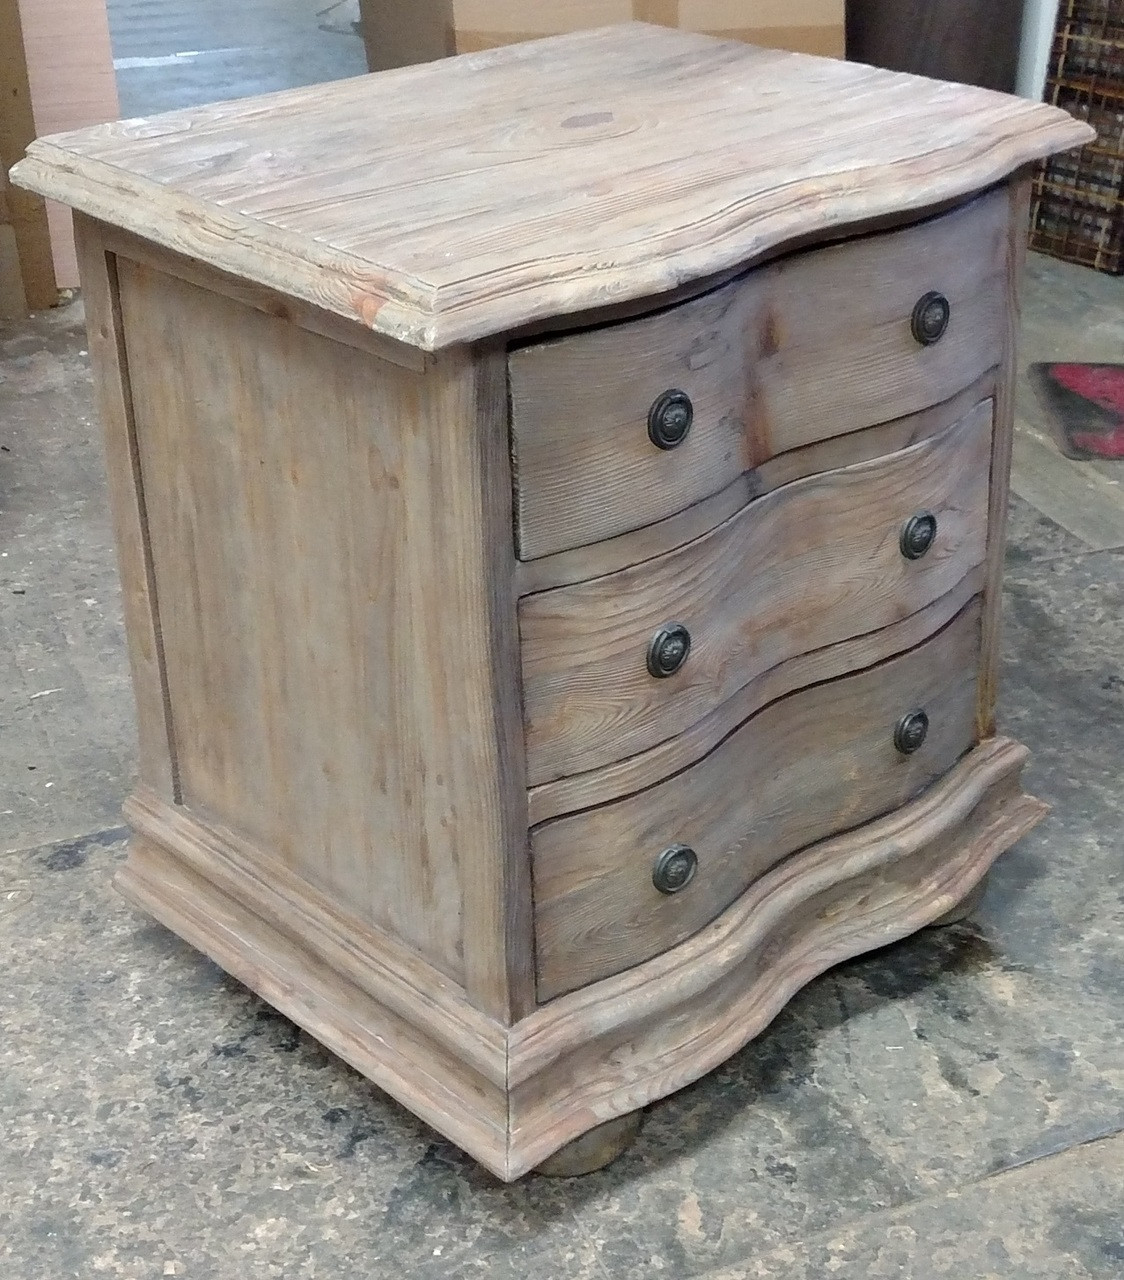 Padma S Plantation Furniture Salvaged Wood End Table With Drawers Nightstand In Old Grey